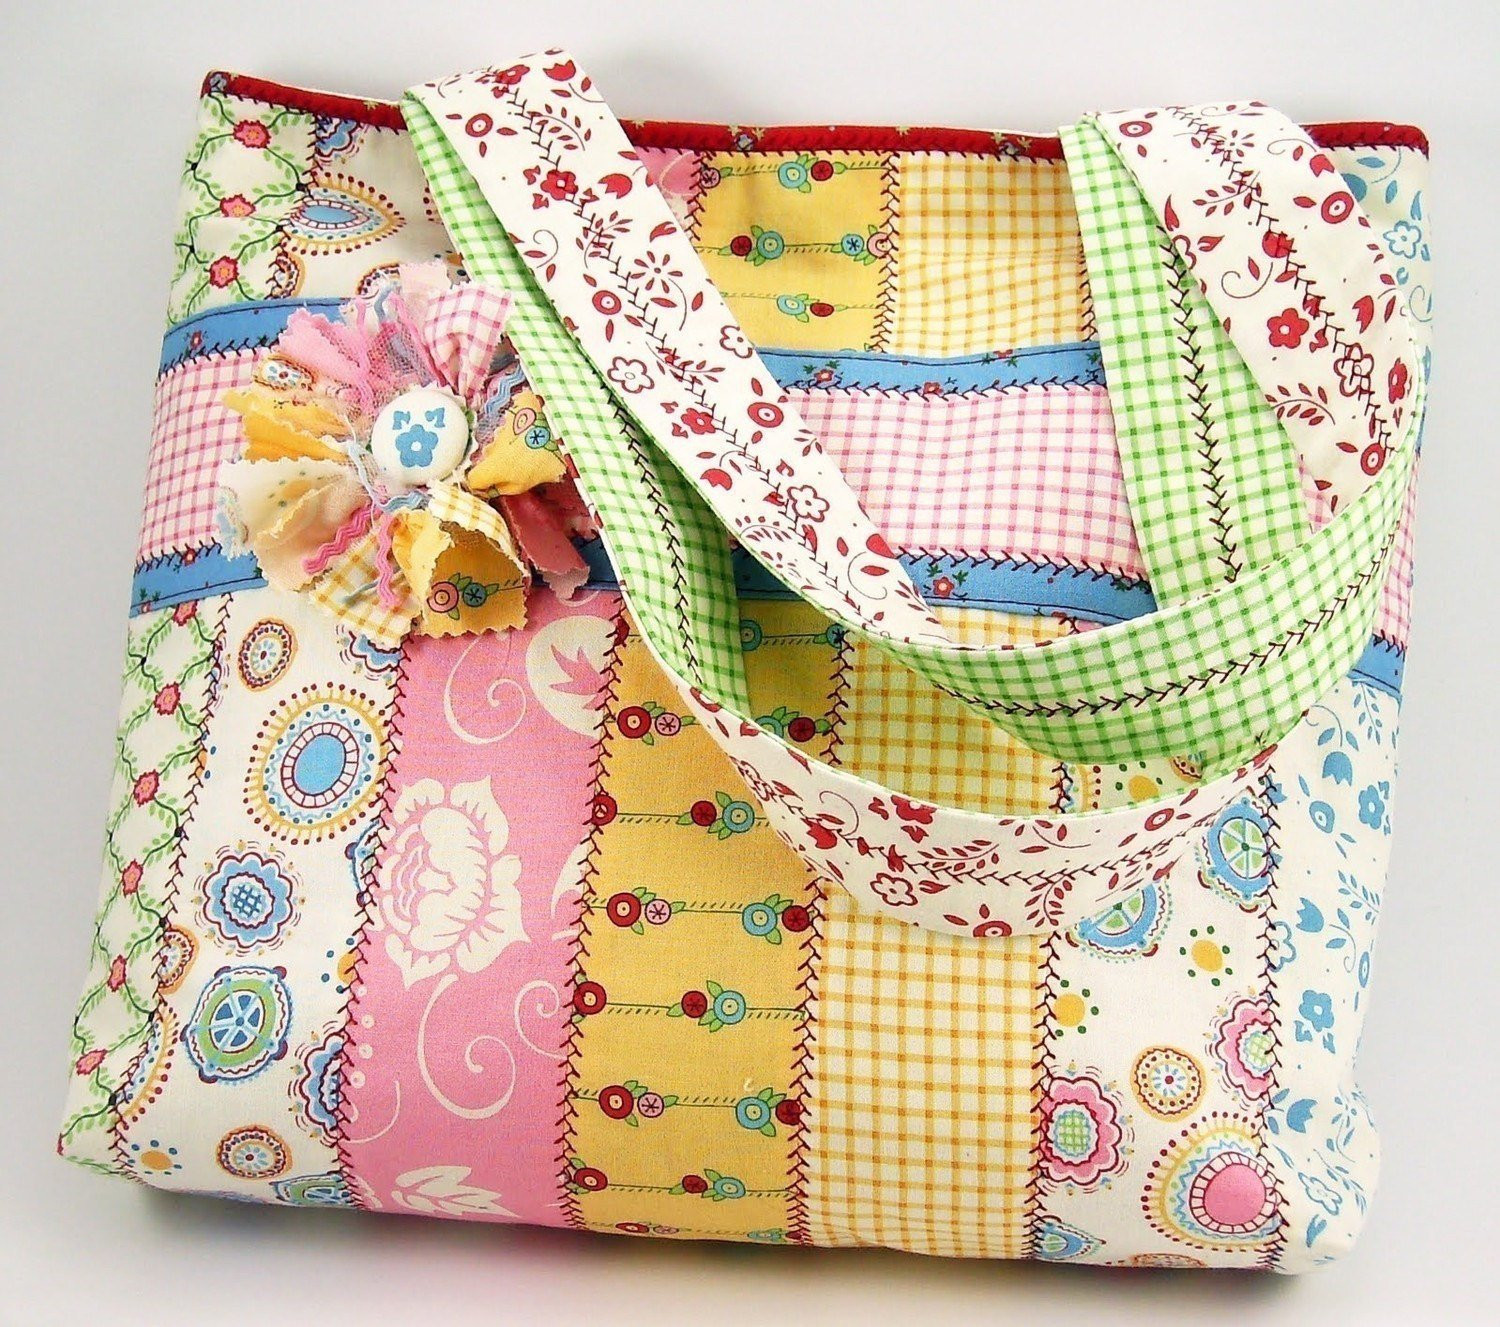 Tote Bag Pattern Inspirational Jelly Roll tote Bag Sewing Pattern with Fabric Flower Brooch Of Beautiful 46 Ideas tote Bag Pattern